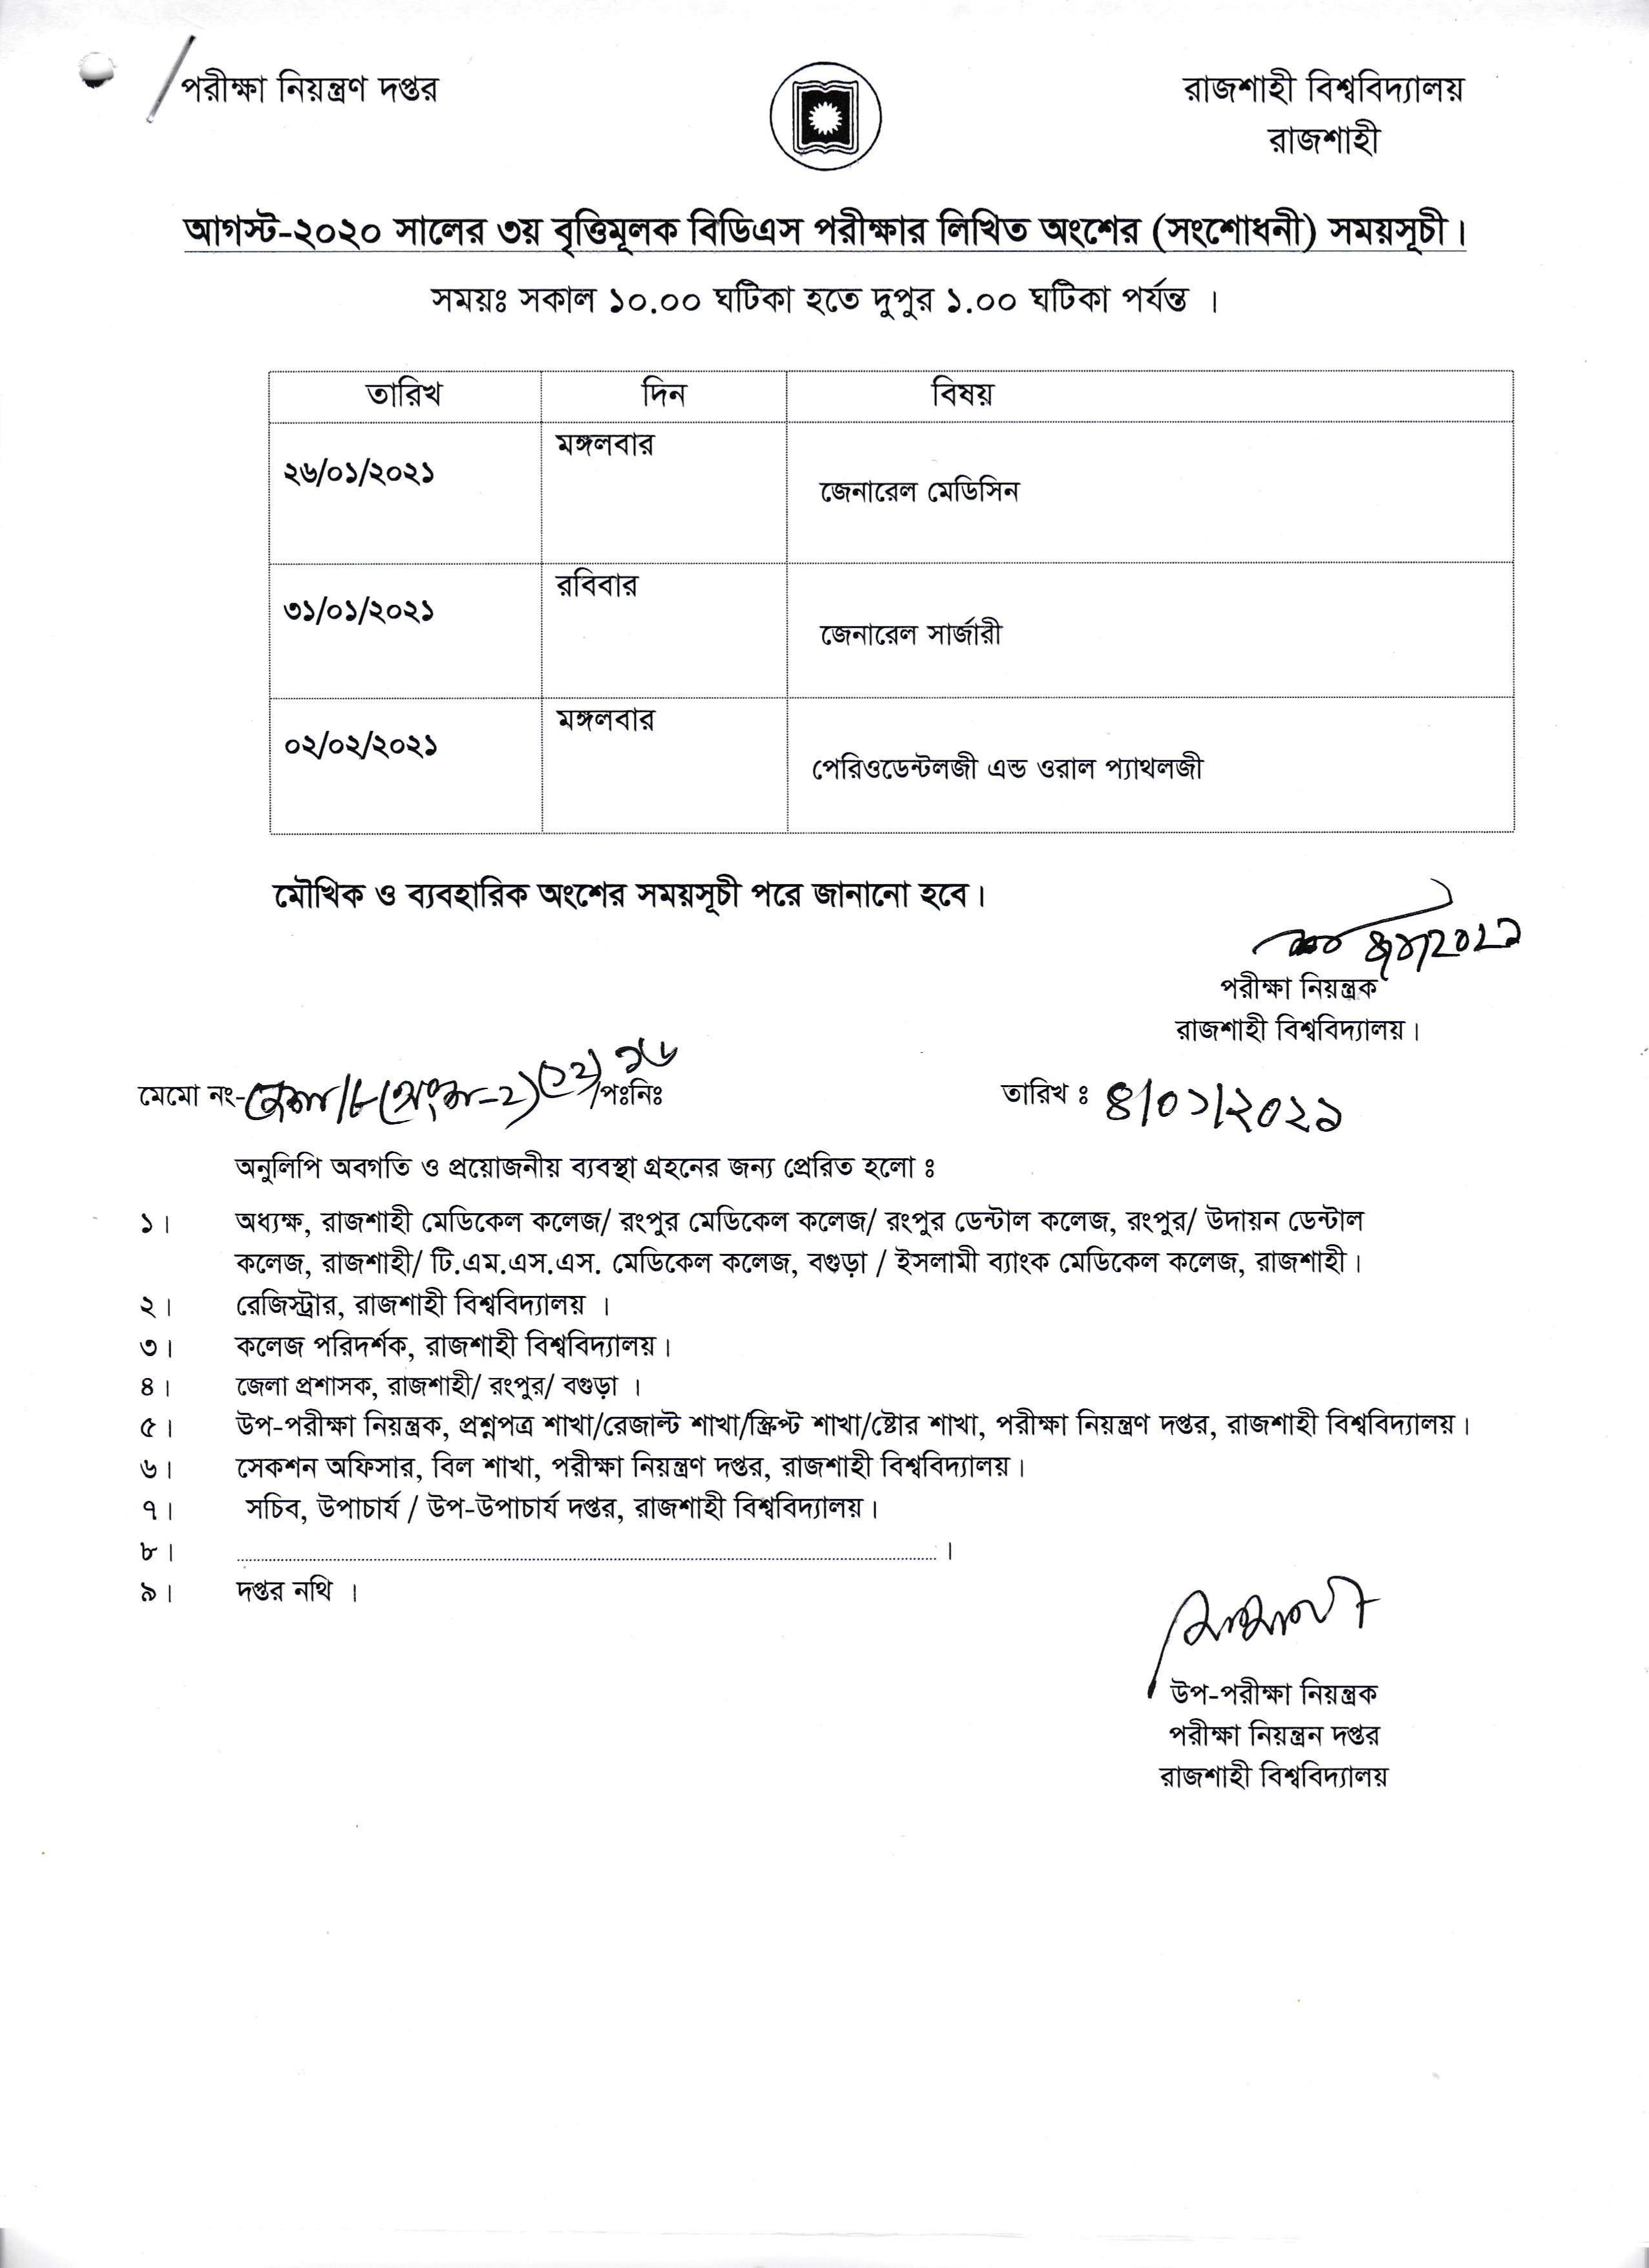 Exam Schedule of RDC 3rd Prof Exam August-2020 from 26 January to 02 February 2021